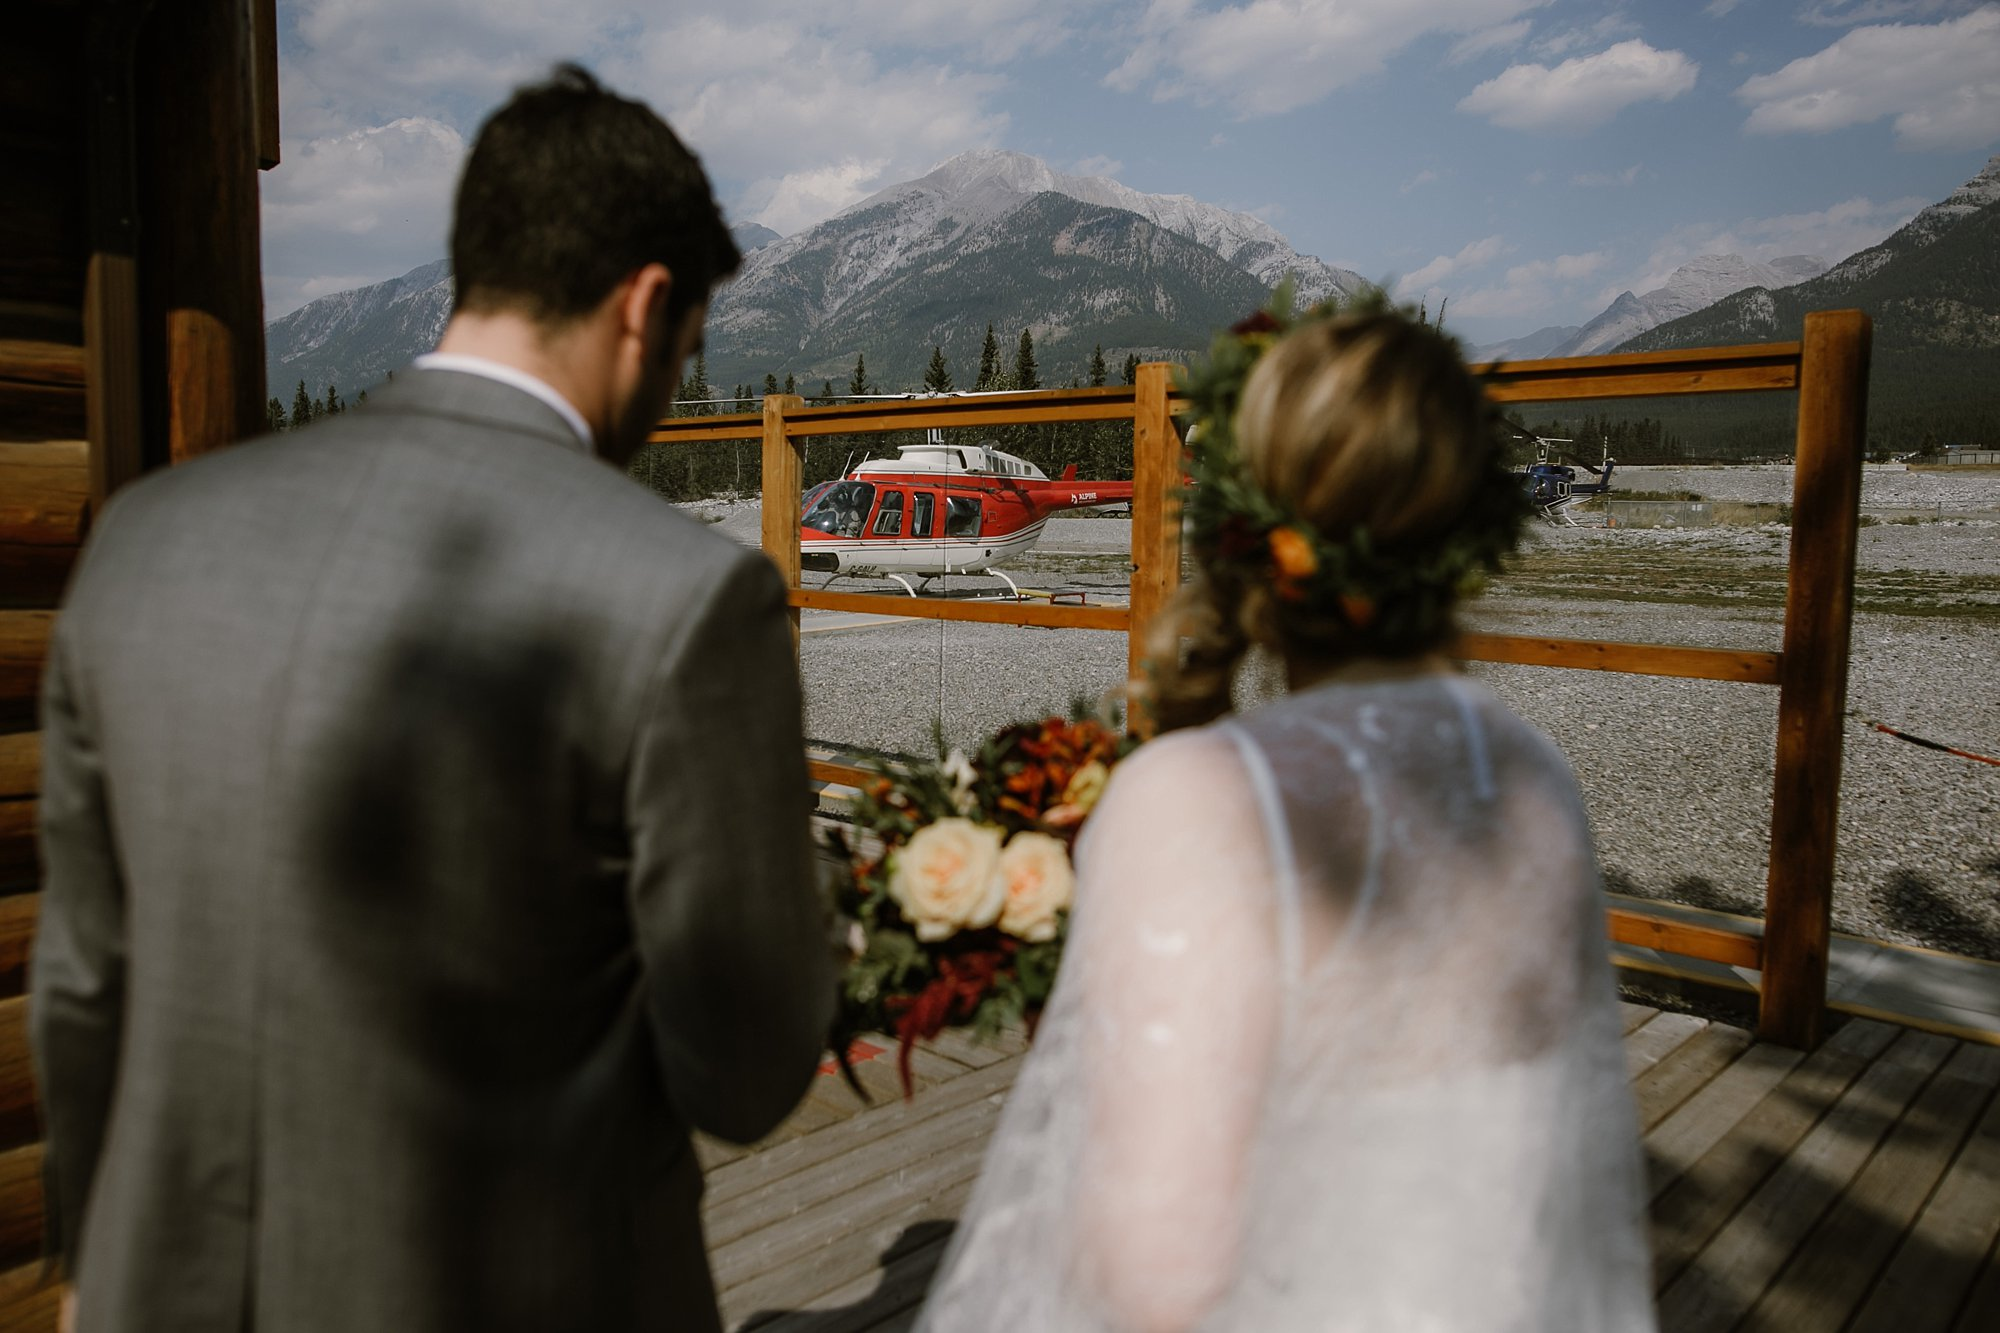 banff-canada-elopement-wedding_0003.jpg